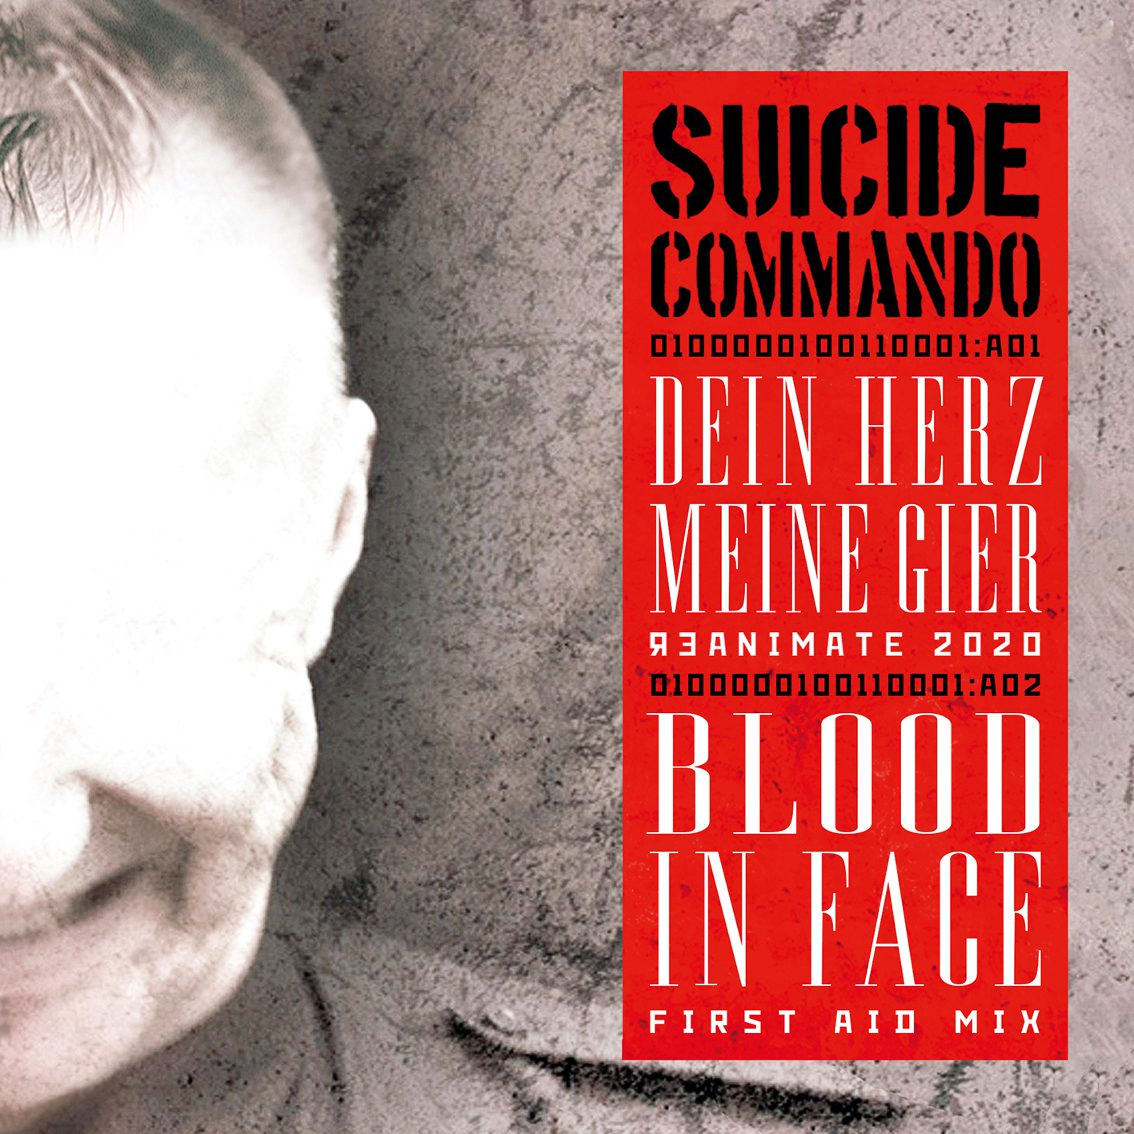 Suicide Commando returns with 'Dein herz, meine gier / Bunkerb!tch' single at the end of August